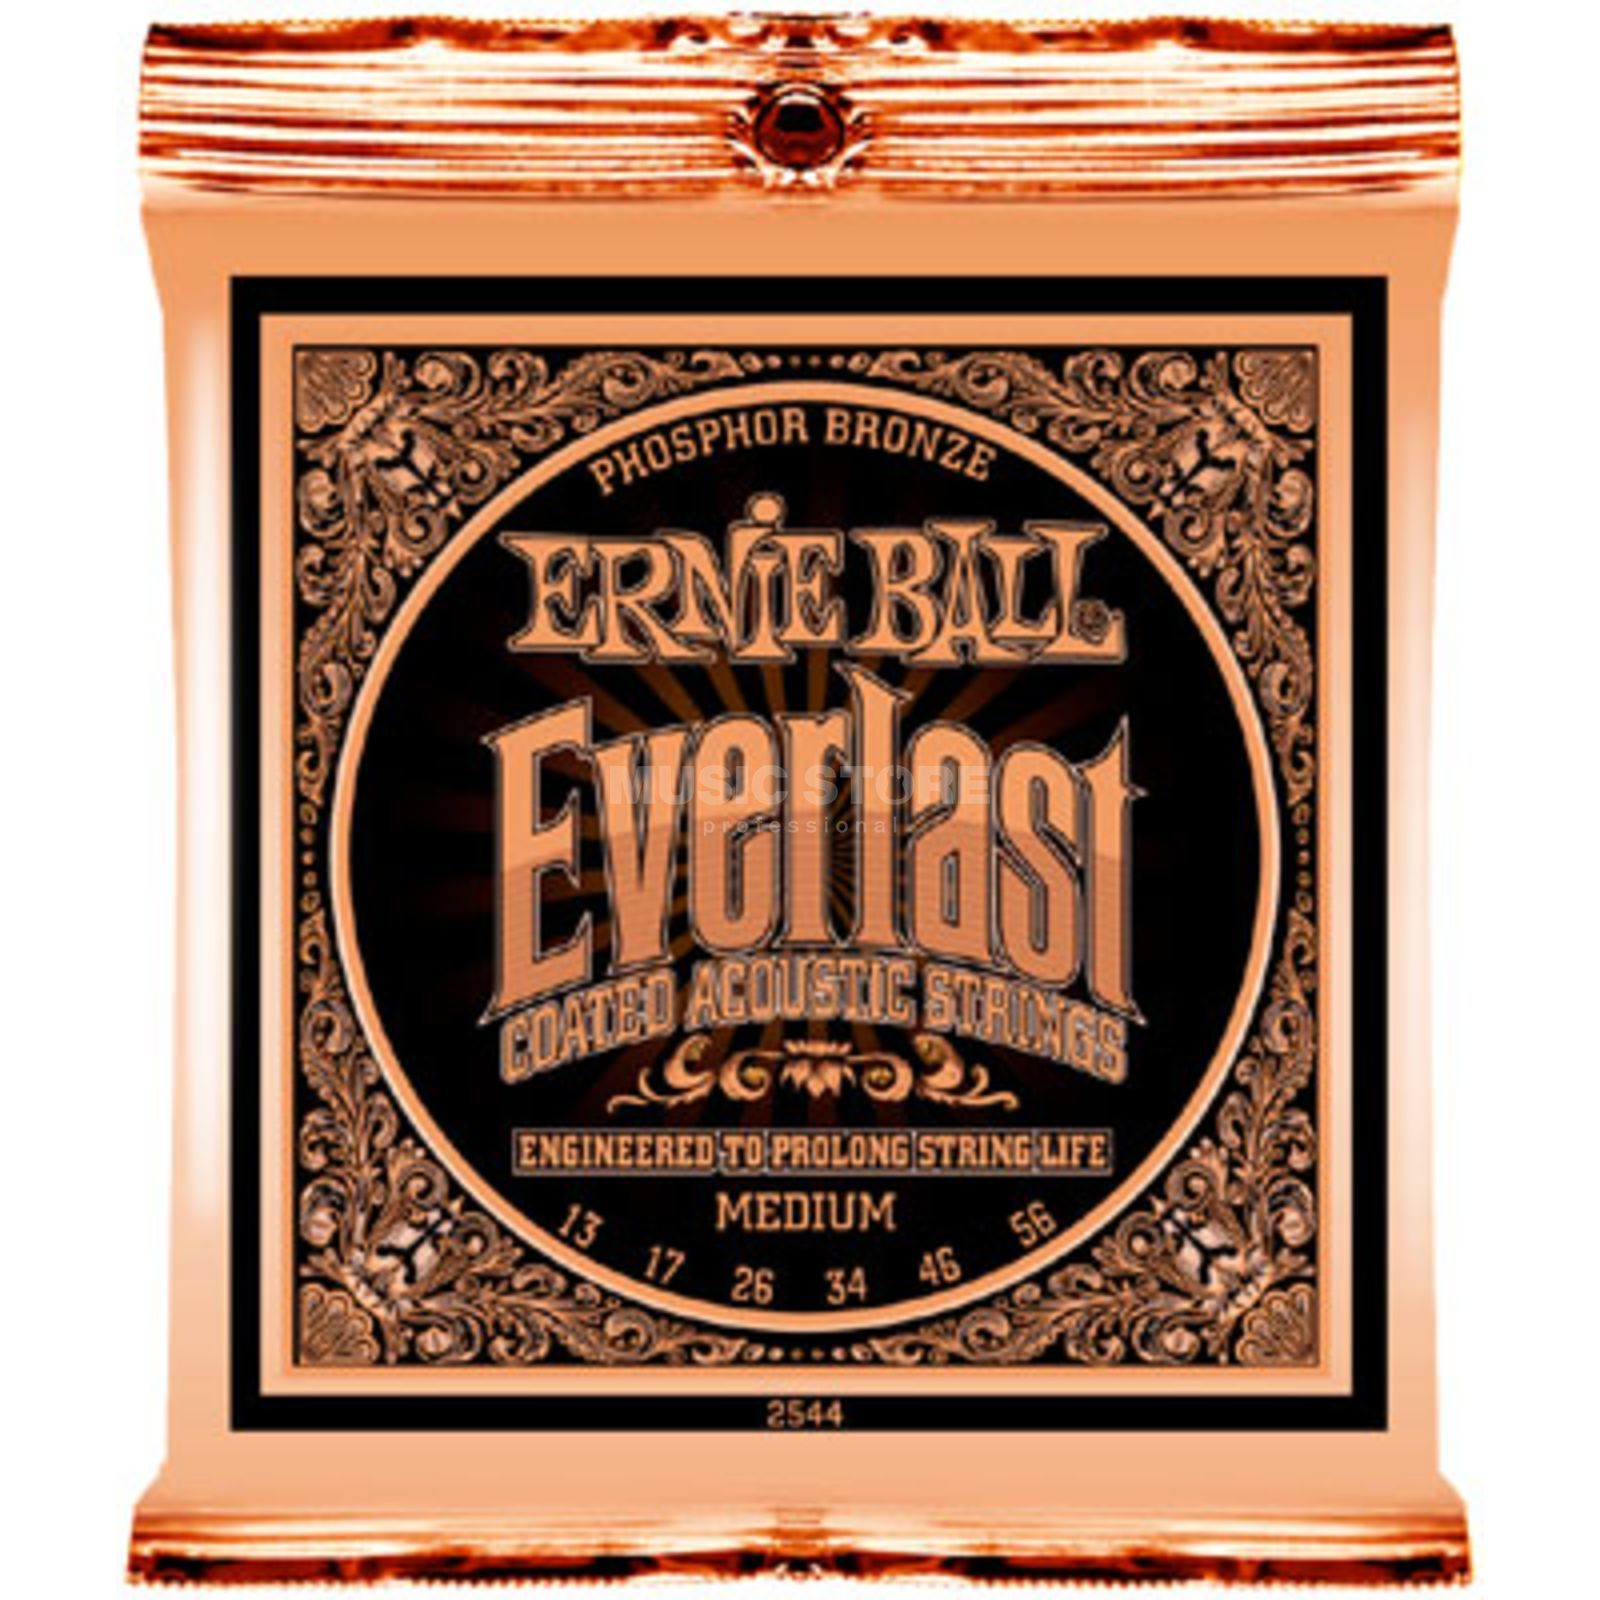 Ernie Ball EB2544 13-56 Everlast Coated Phosphor Bronze Medium Produktbild